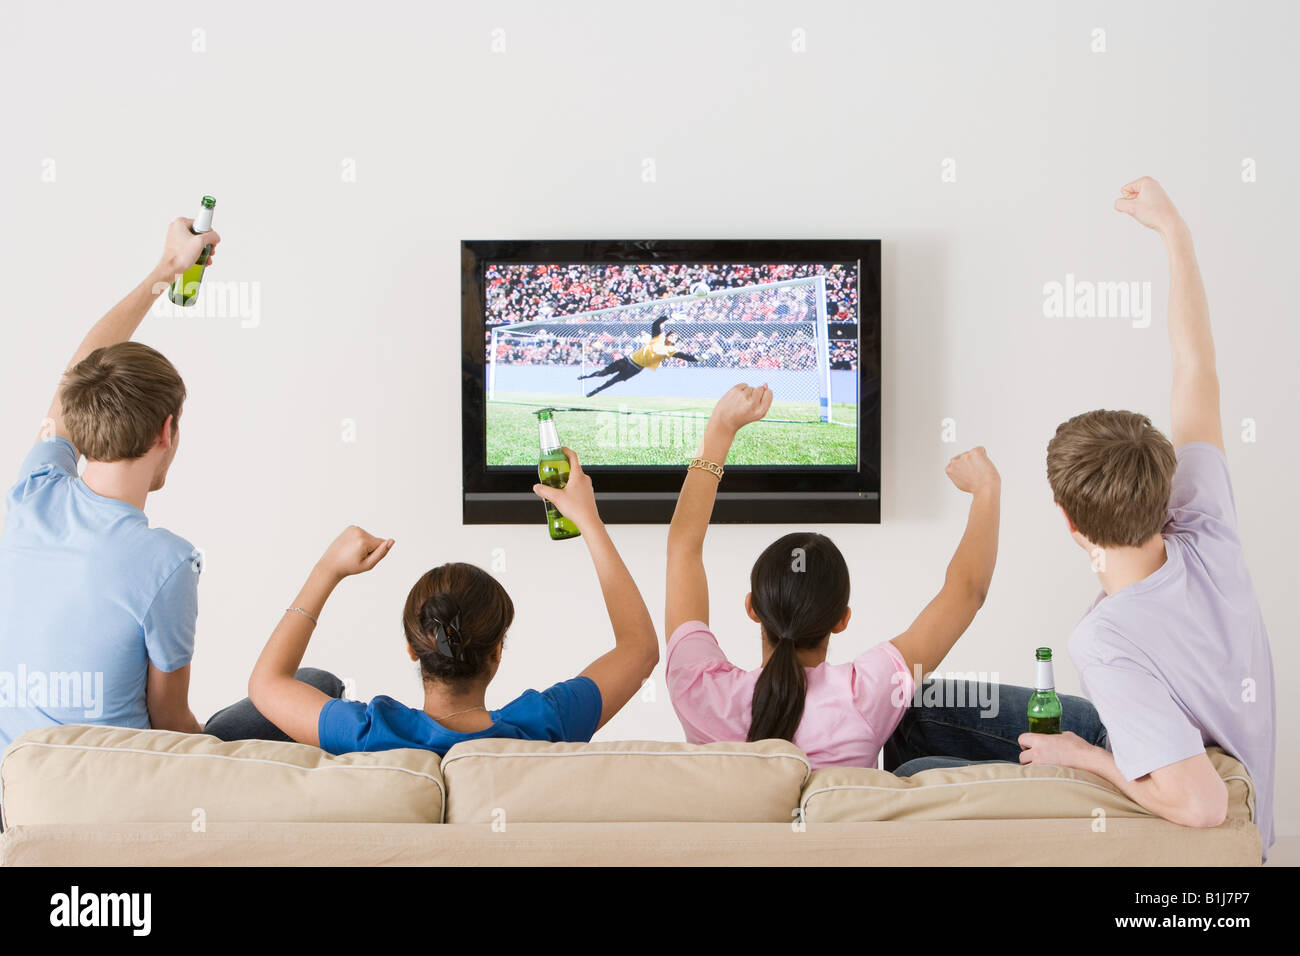 Friends watching football on the tv - Stock Image